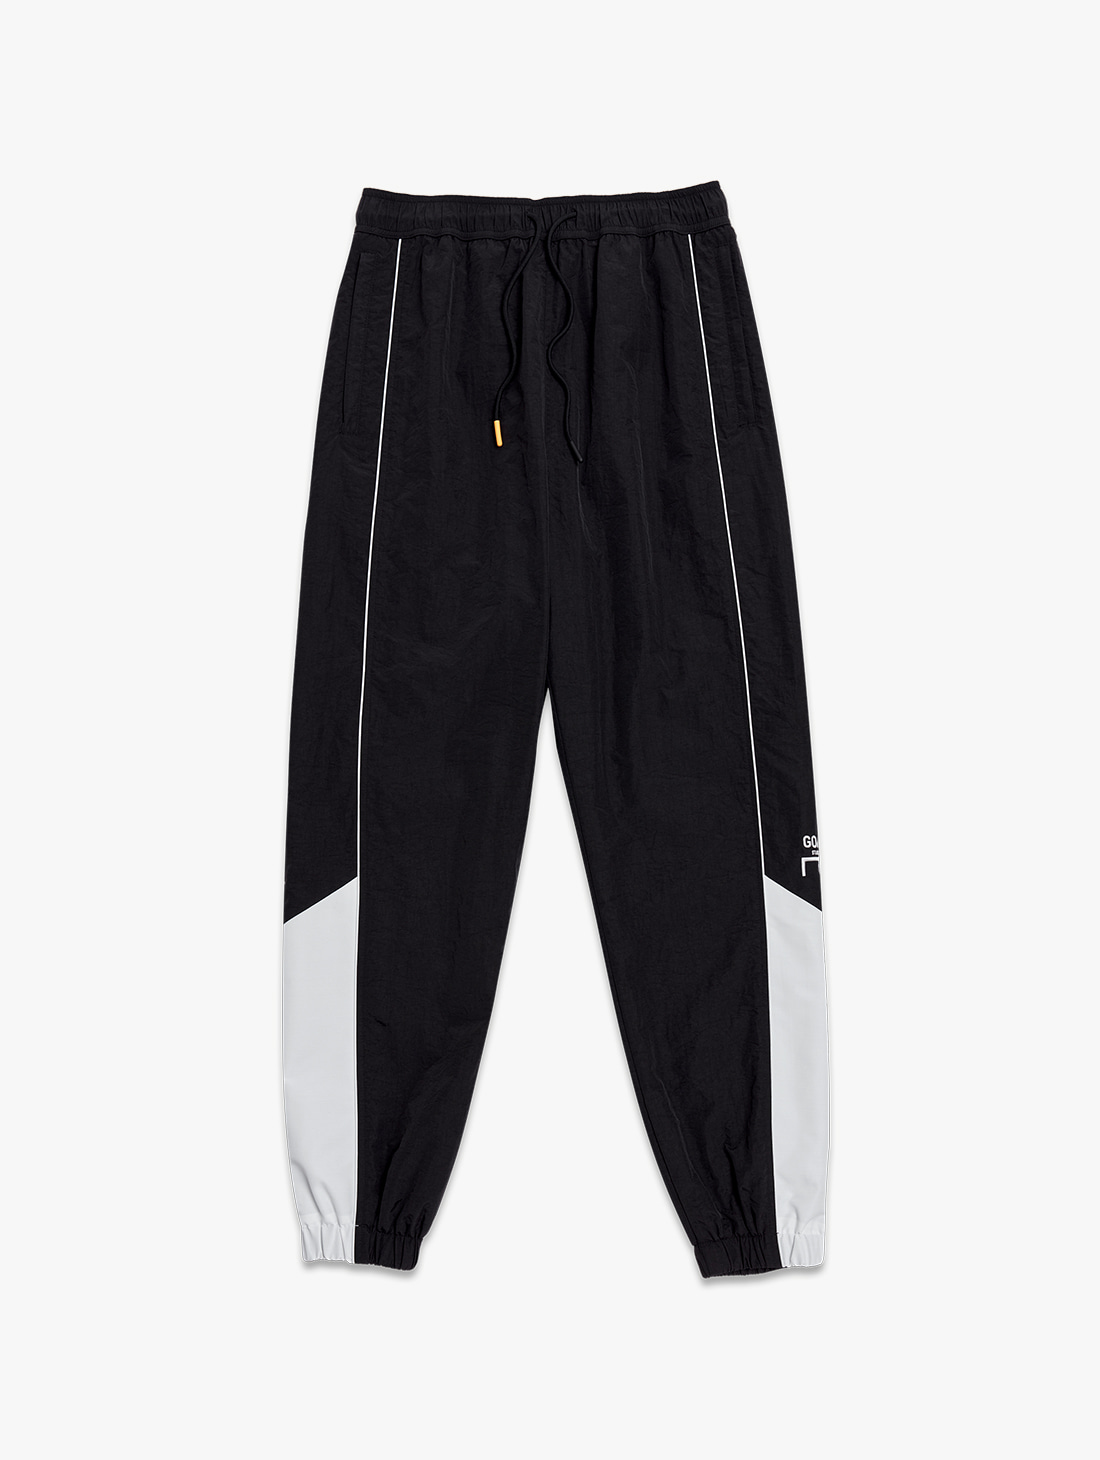 WWFC TRACK PANTS (2 Colors)